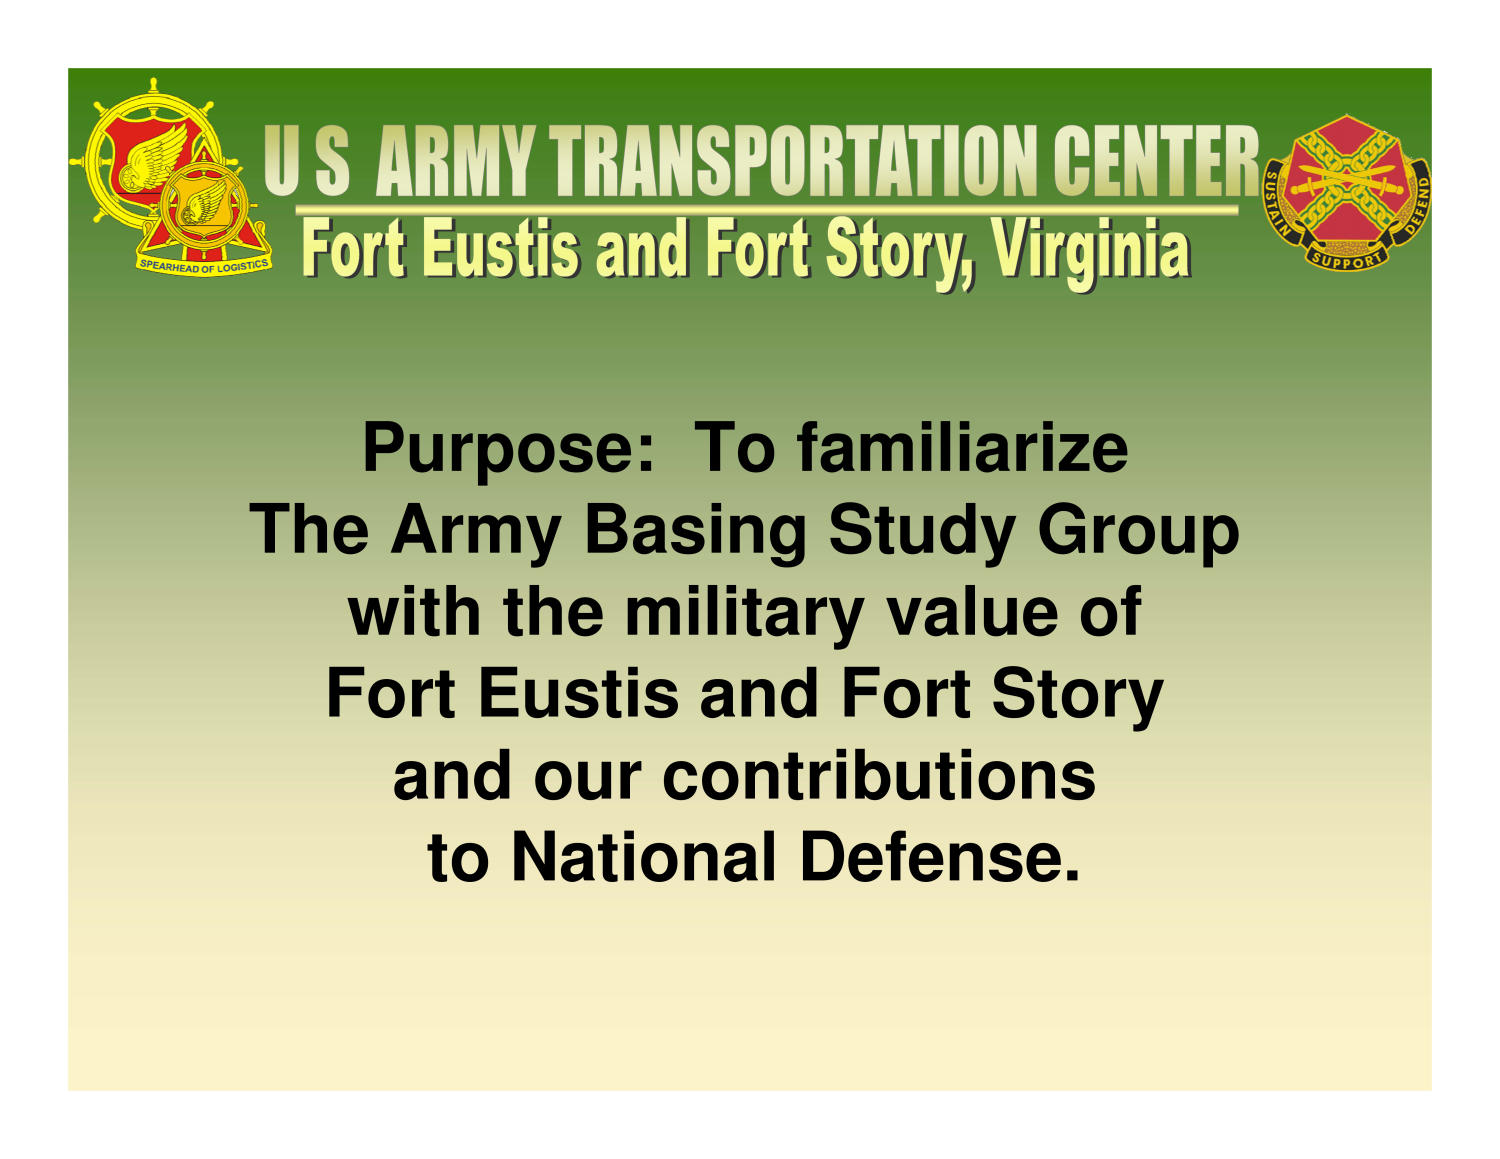 Fort Eustis Installation Familiarization Briefing (11 Mar 04)                                                                                                      [Sequence #]: 2 of 85